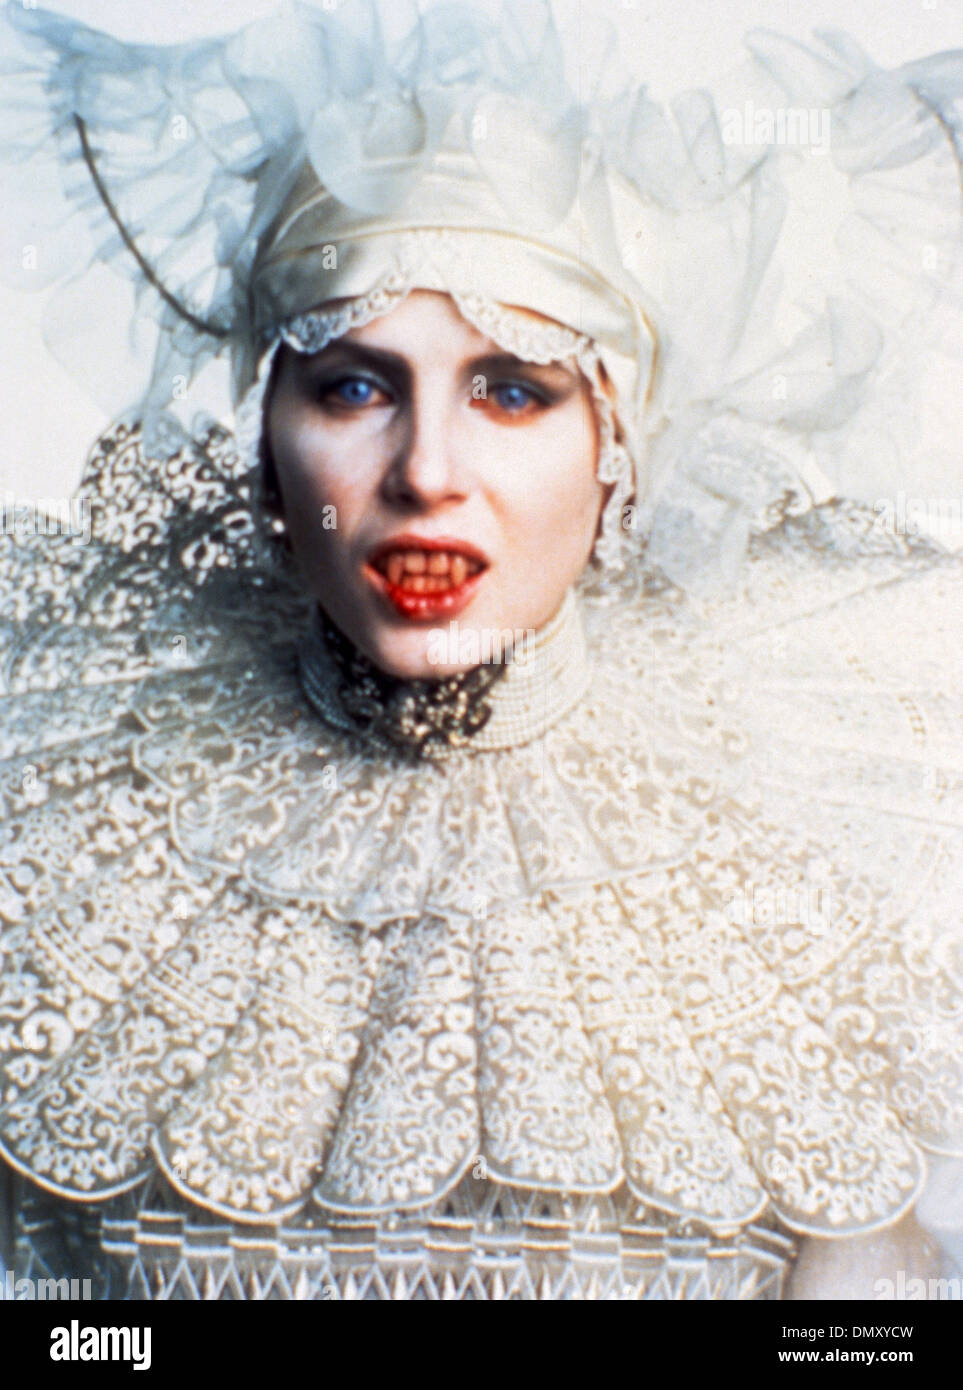 Dracula 1992 American Zoetrope Film With Sadie Frost Stock Image